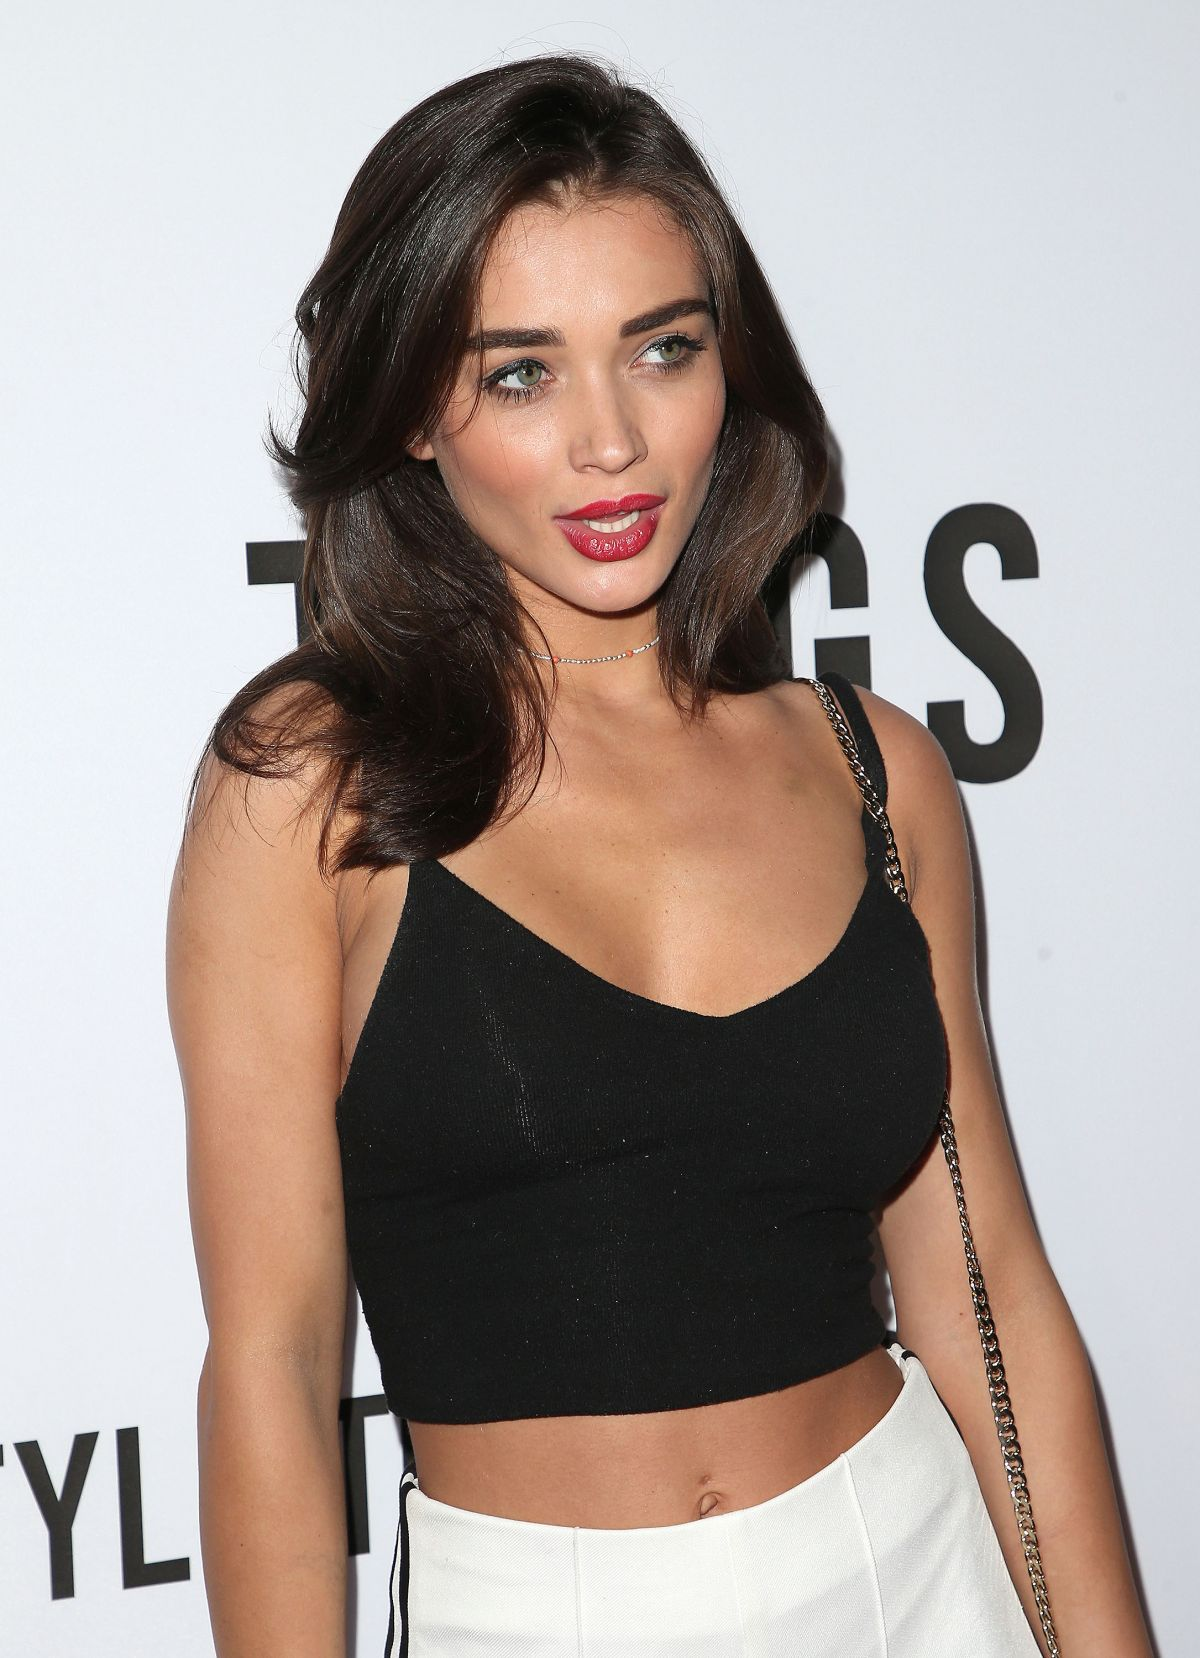 AMY JACKSON at The Tings Secret Party Launch in West Hollywood 08/23/2017